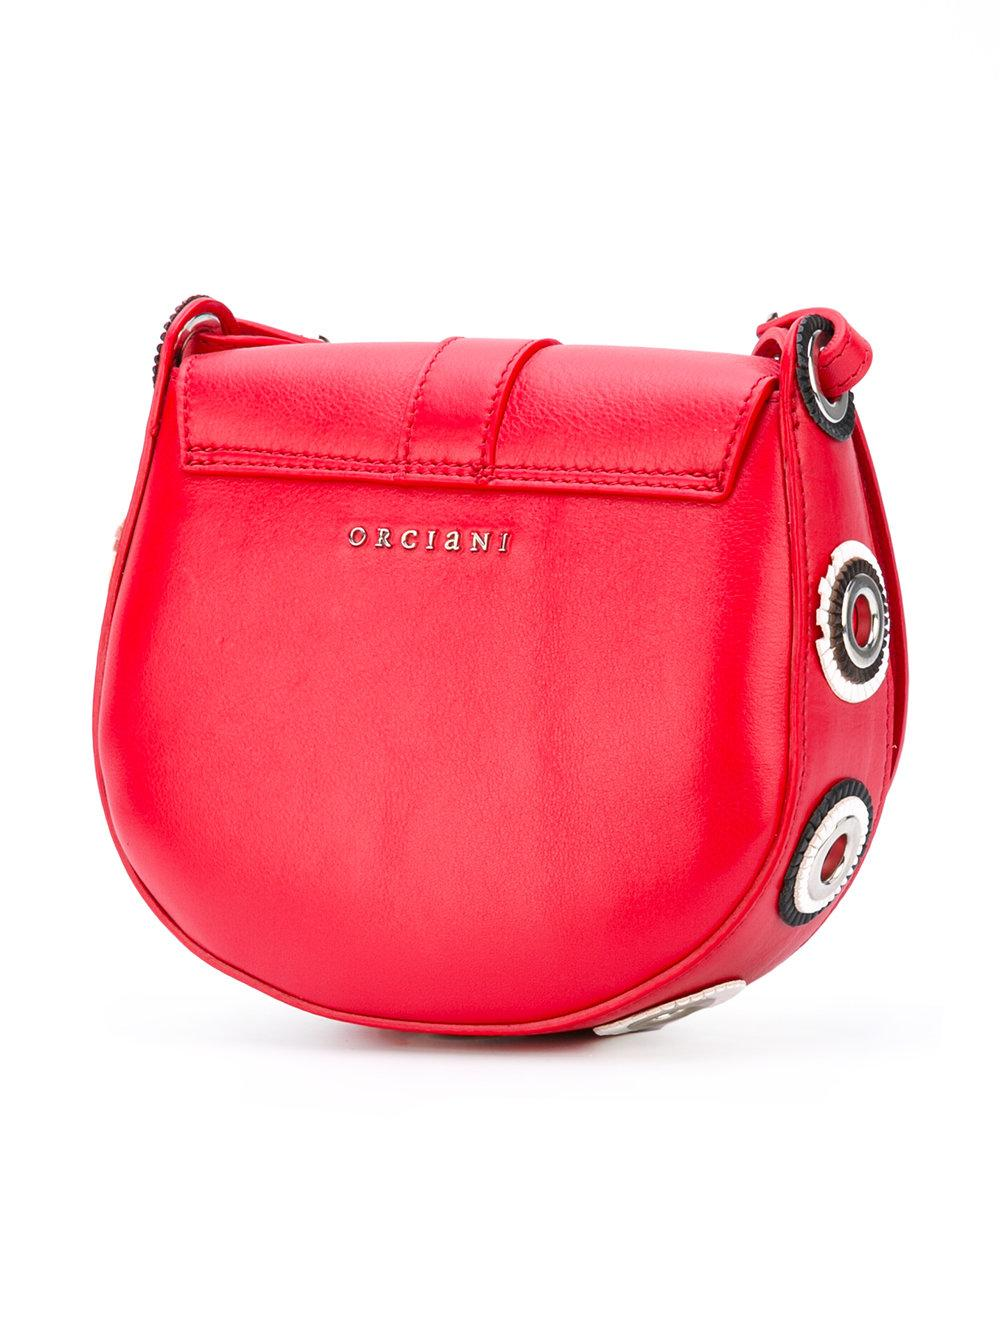 Orciani Leather Montana Crossbody Bag in Red